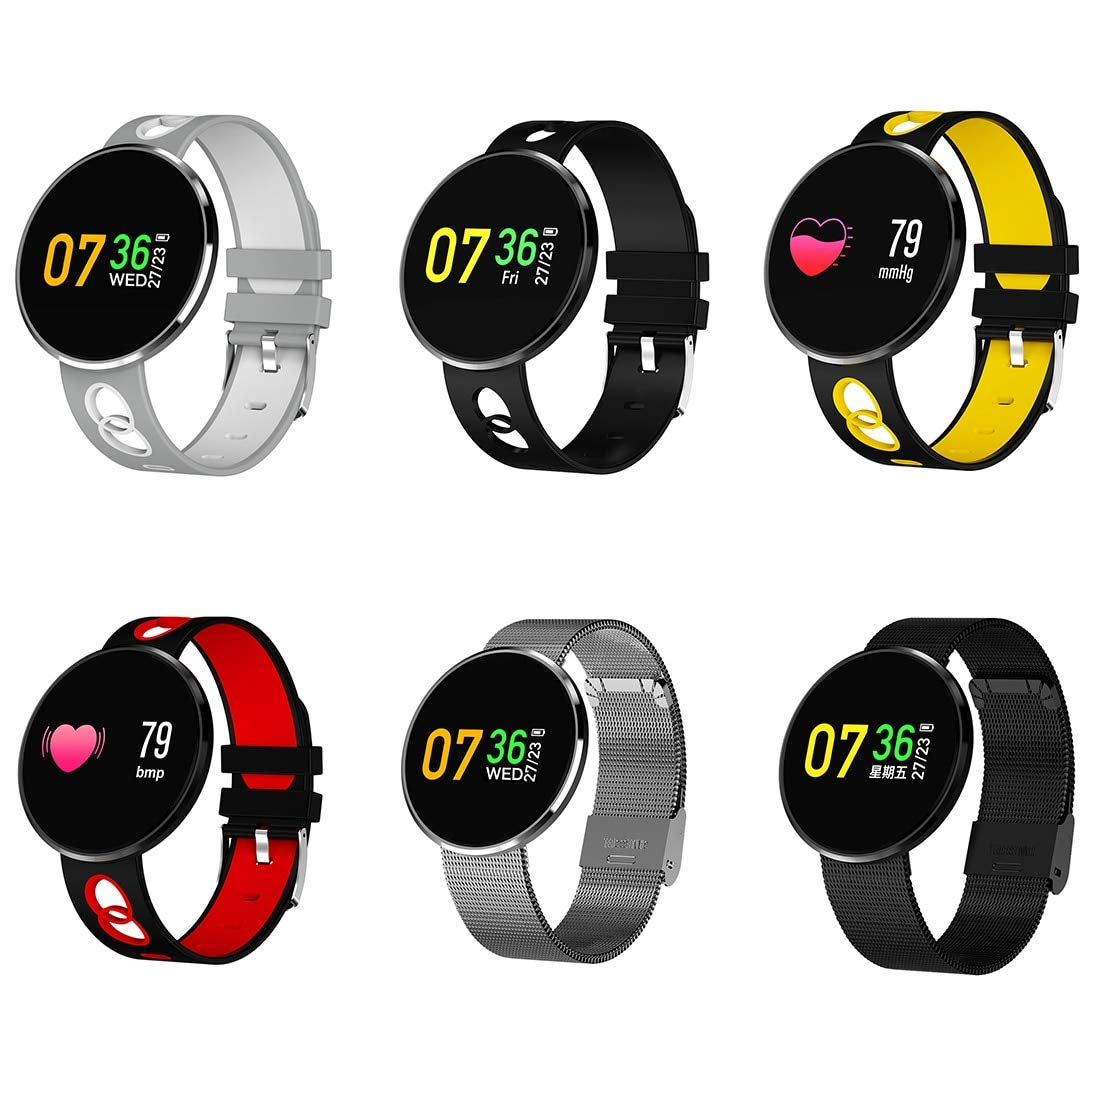 MRLIFY Smartwatch CF006H, Reloj Inteligente con Bluetooth ...